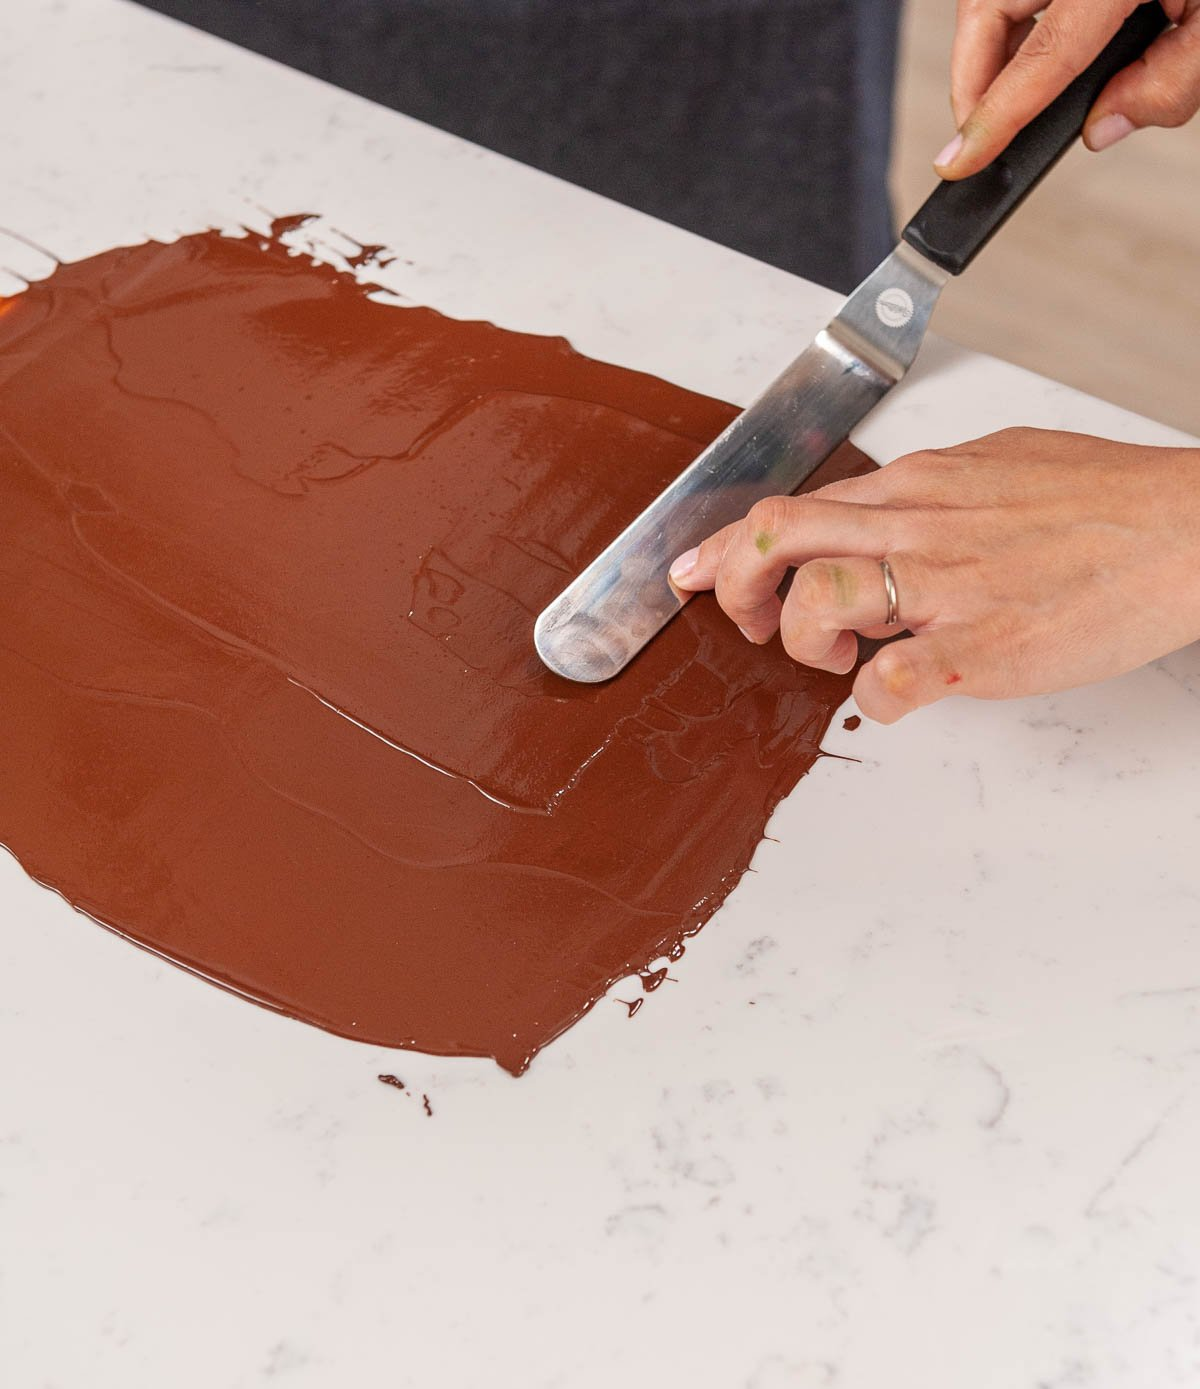 spreading chocolate on acetate with an offset spatula